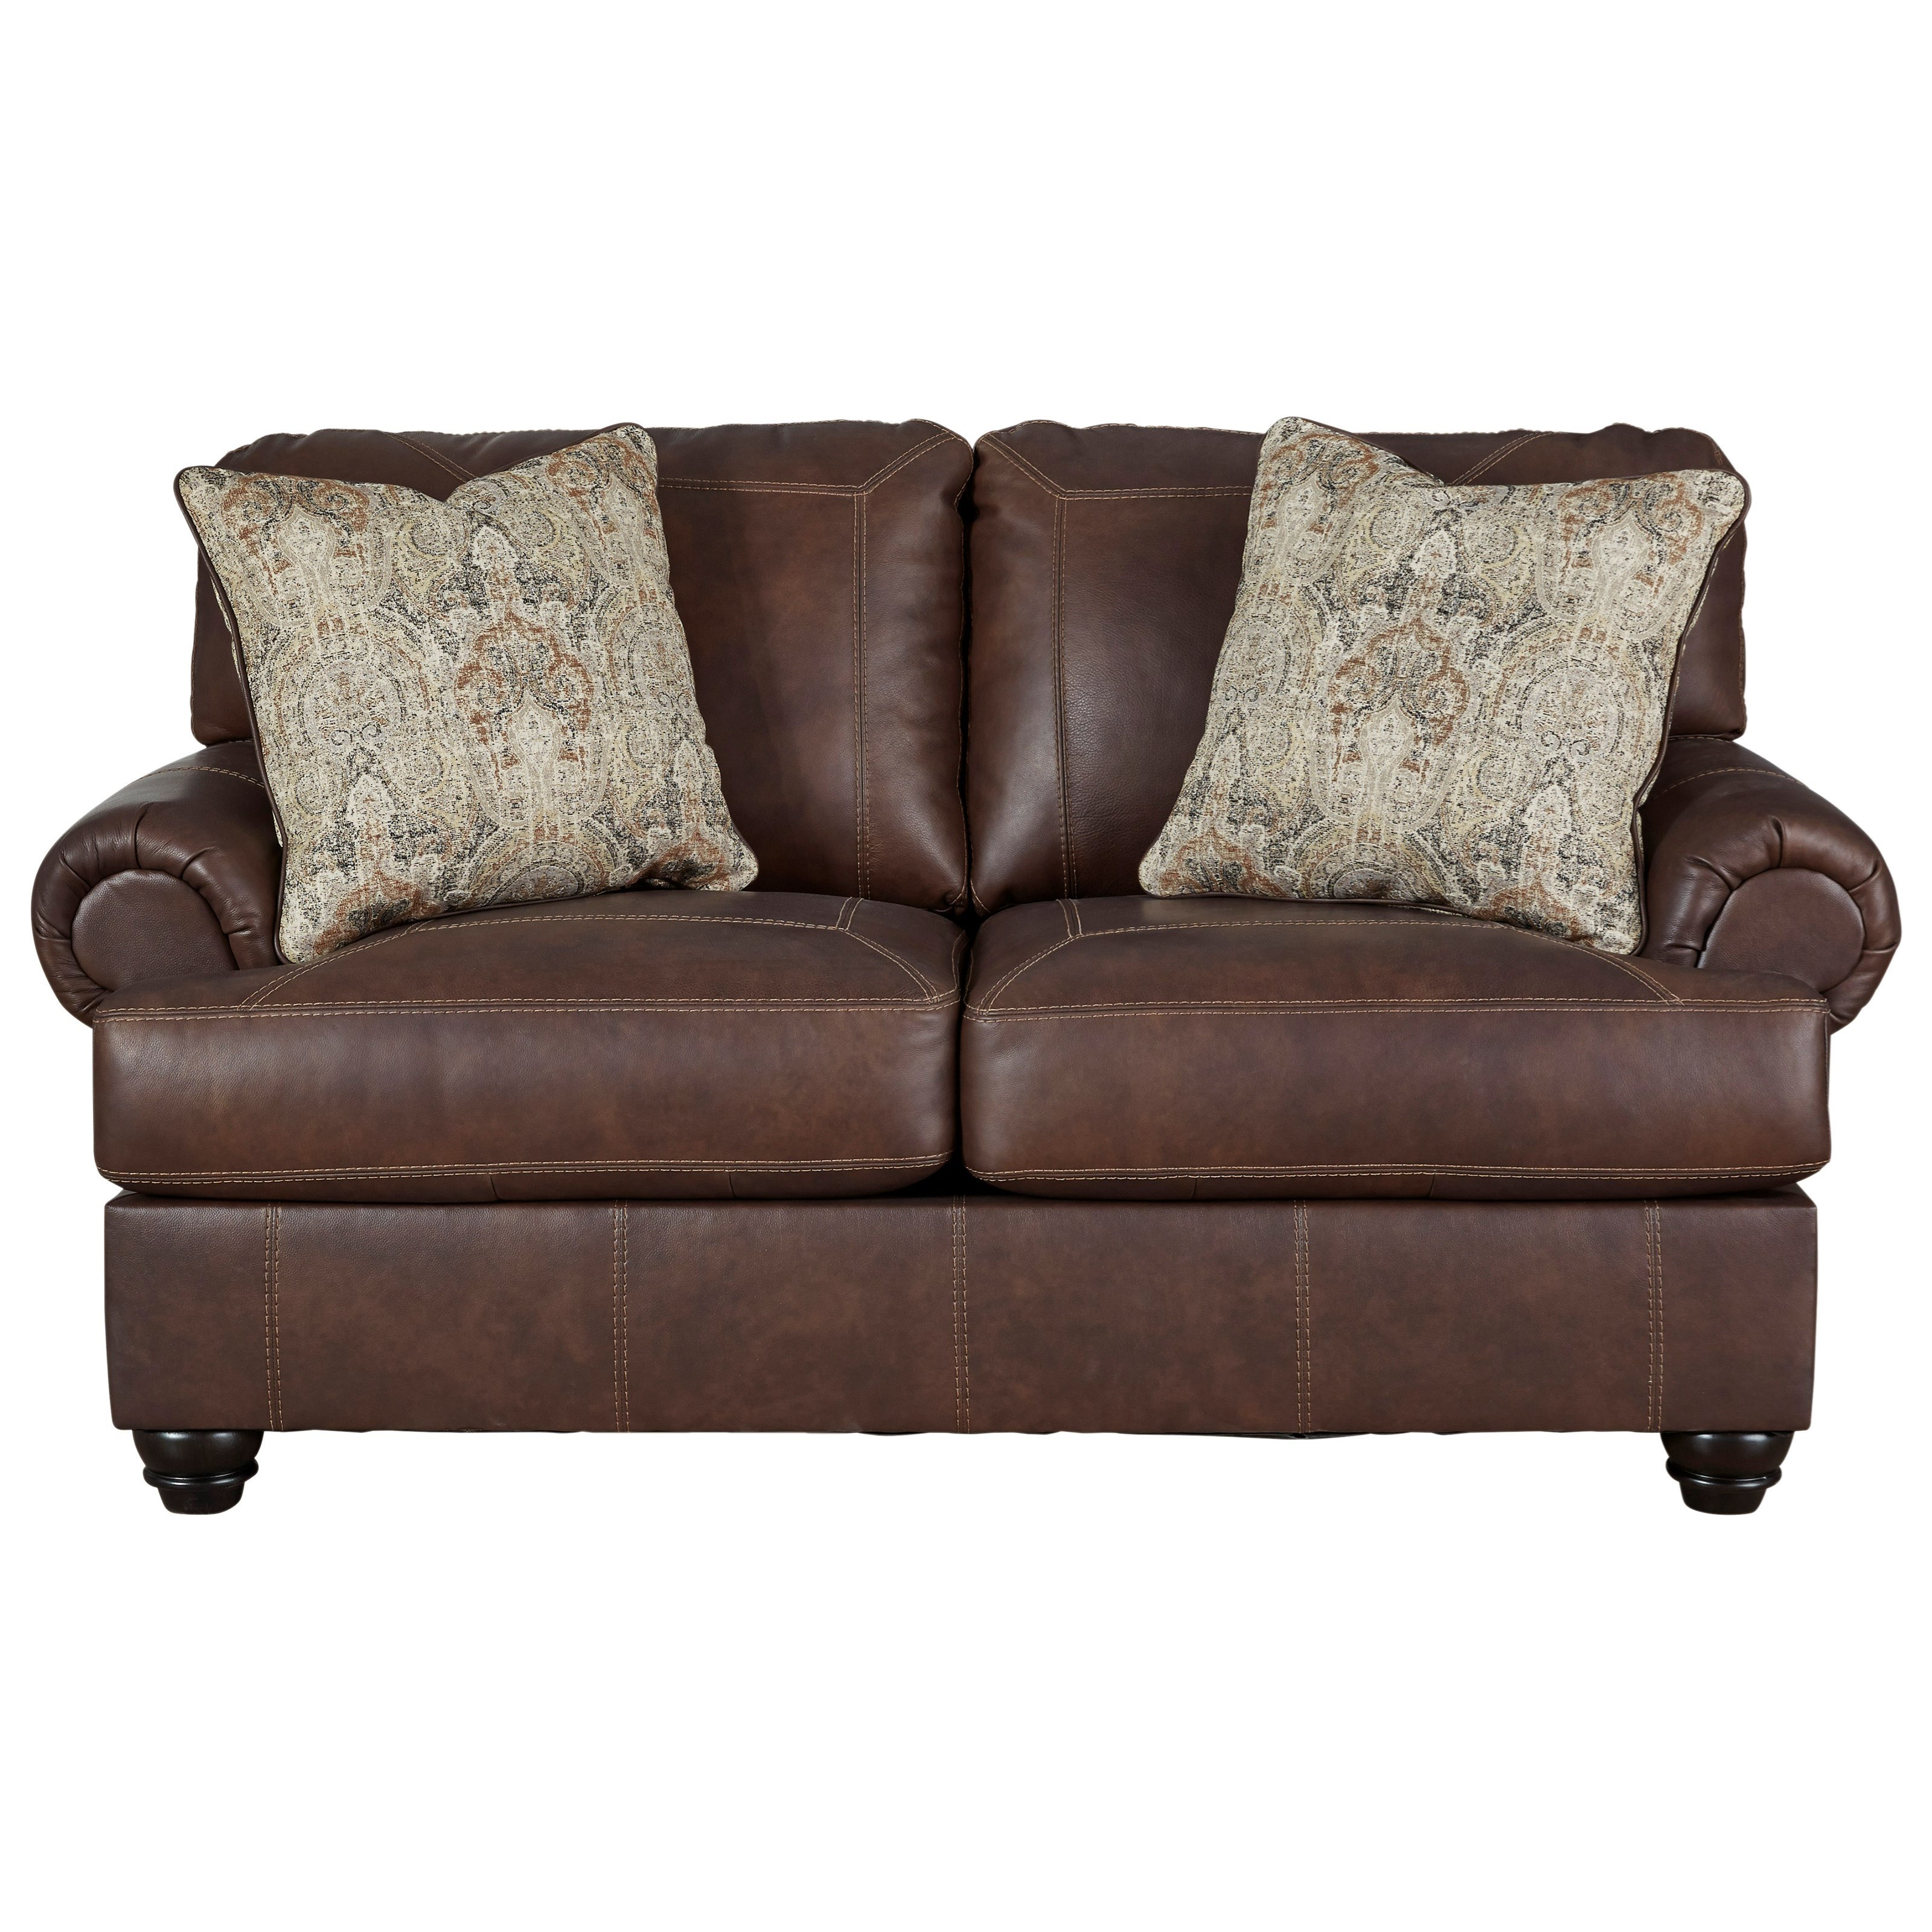 Bearmerton Loveseat by Signature Design by Ashley at Zak's Warehouse Clearance Center